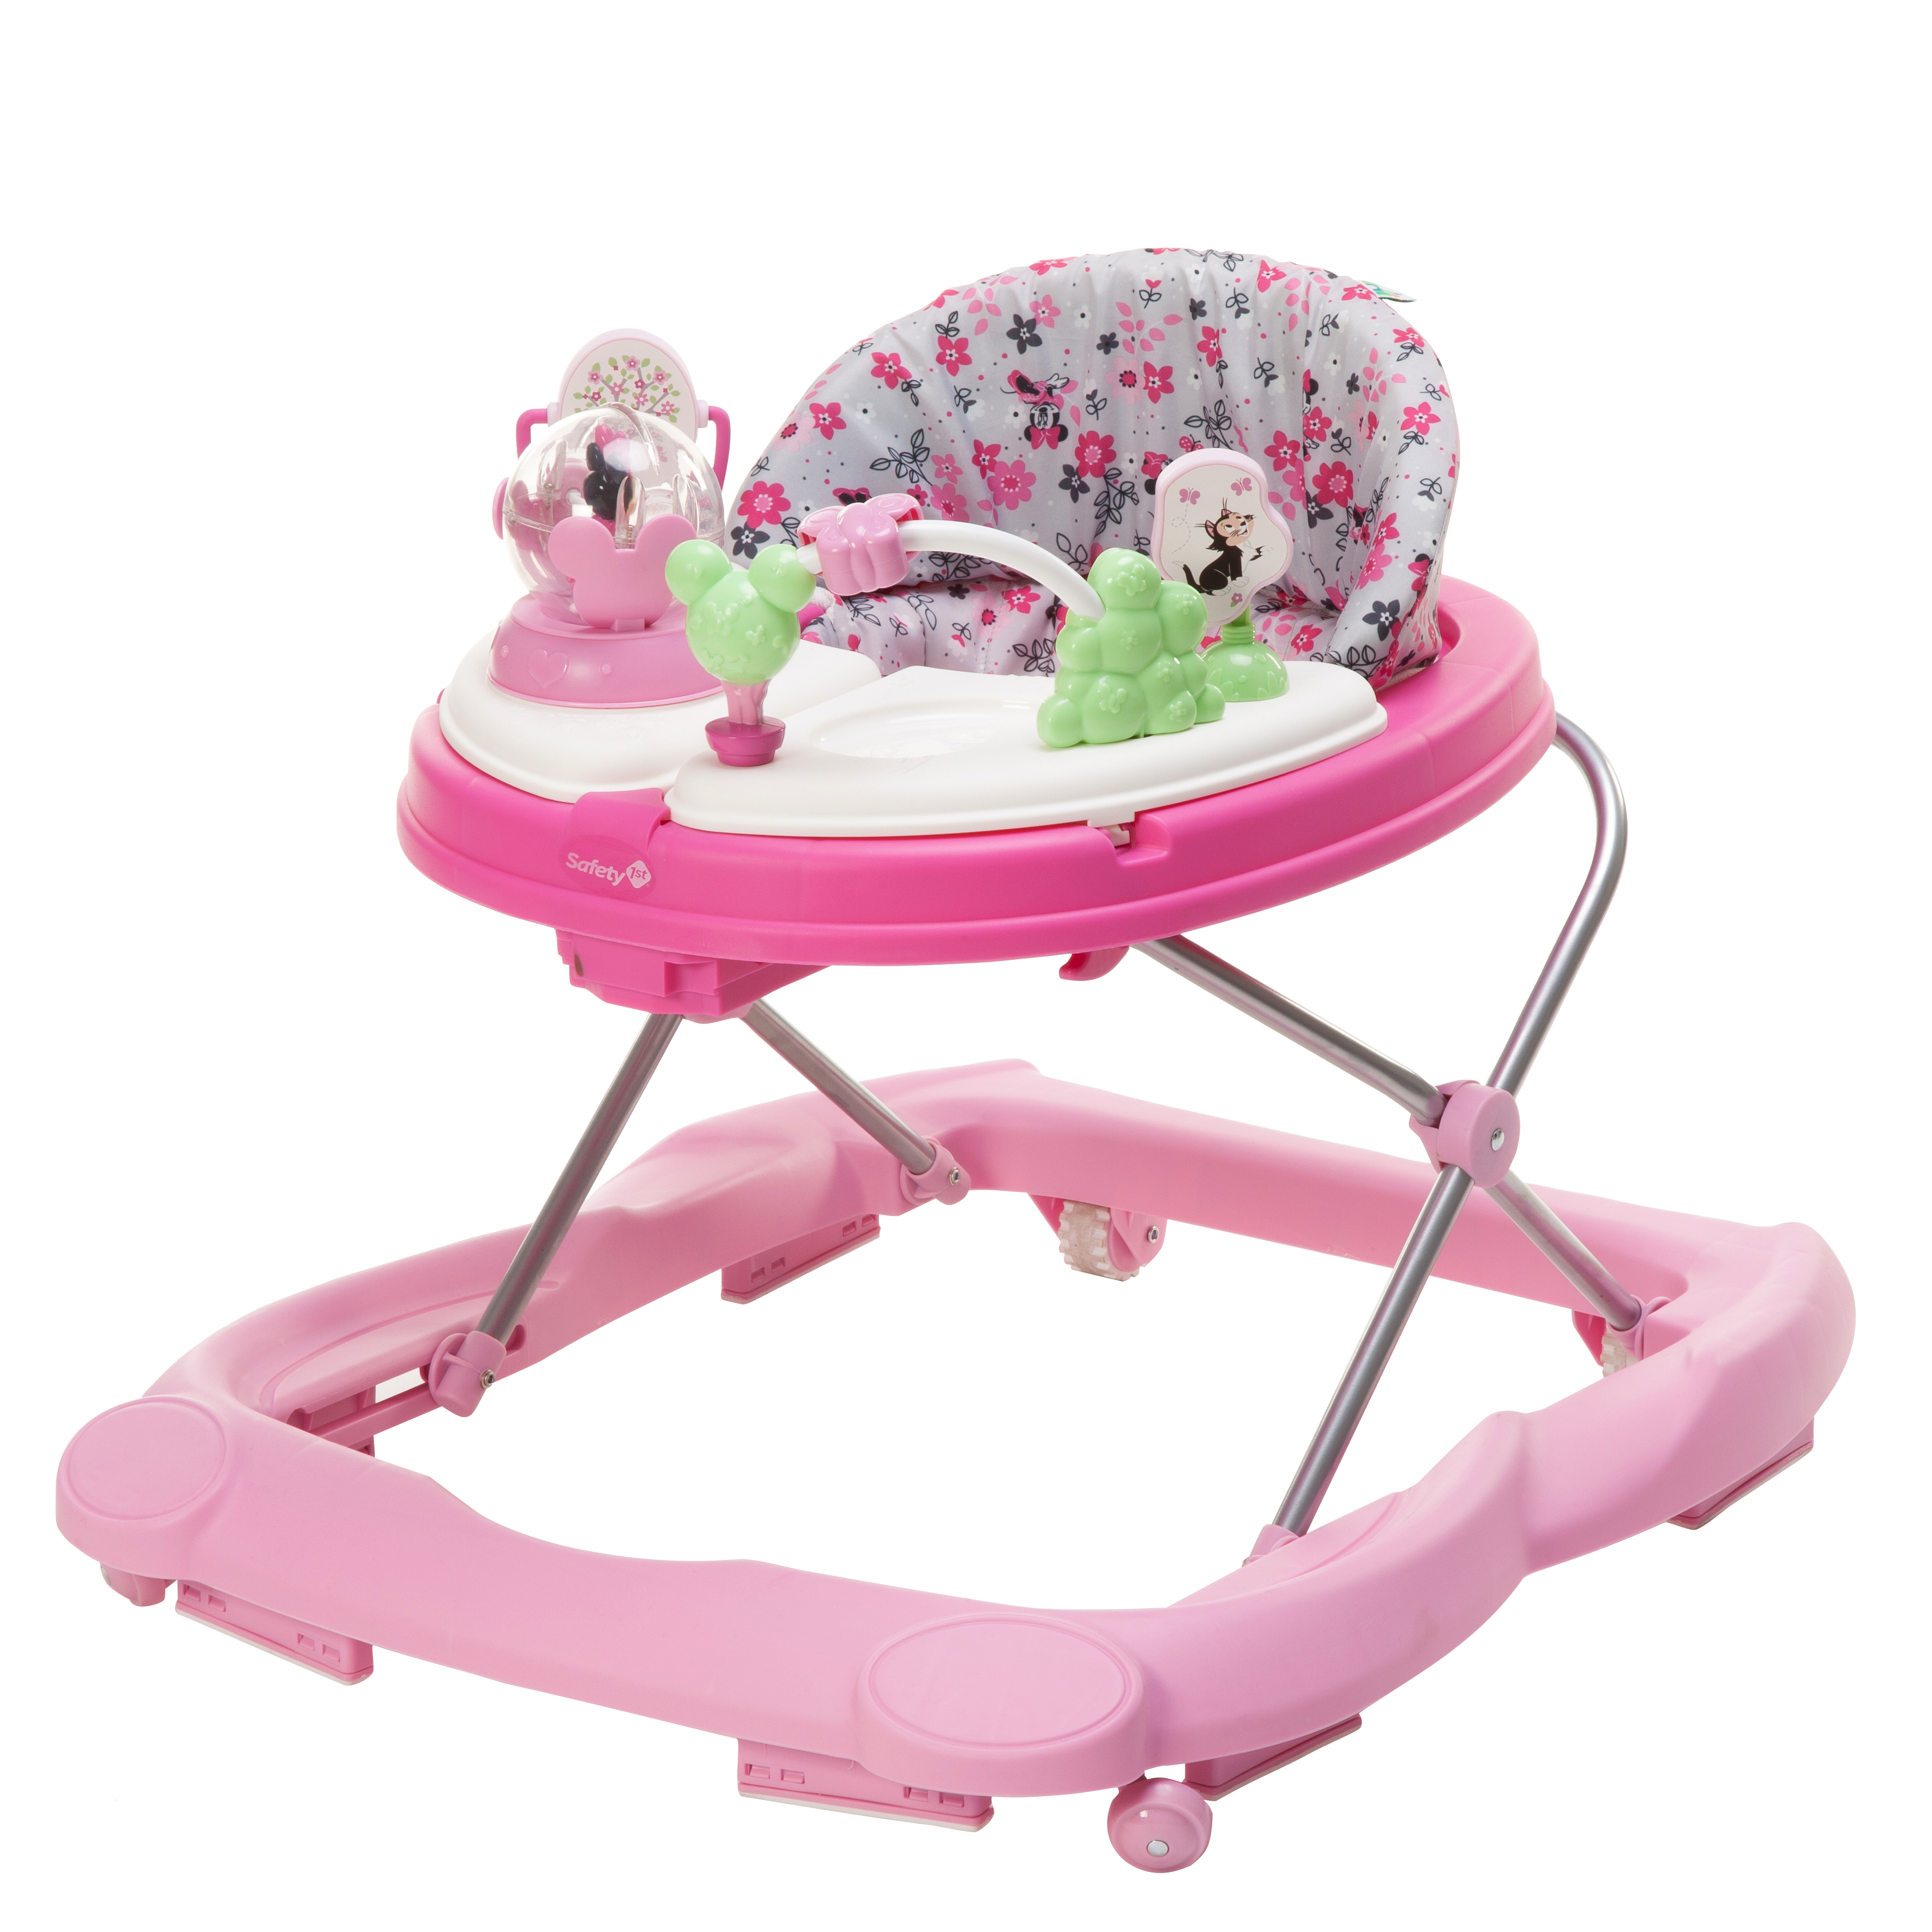 Disney Baby Music & Lights Walker with Activity Tray, Minnie Garden Delight